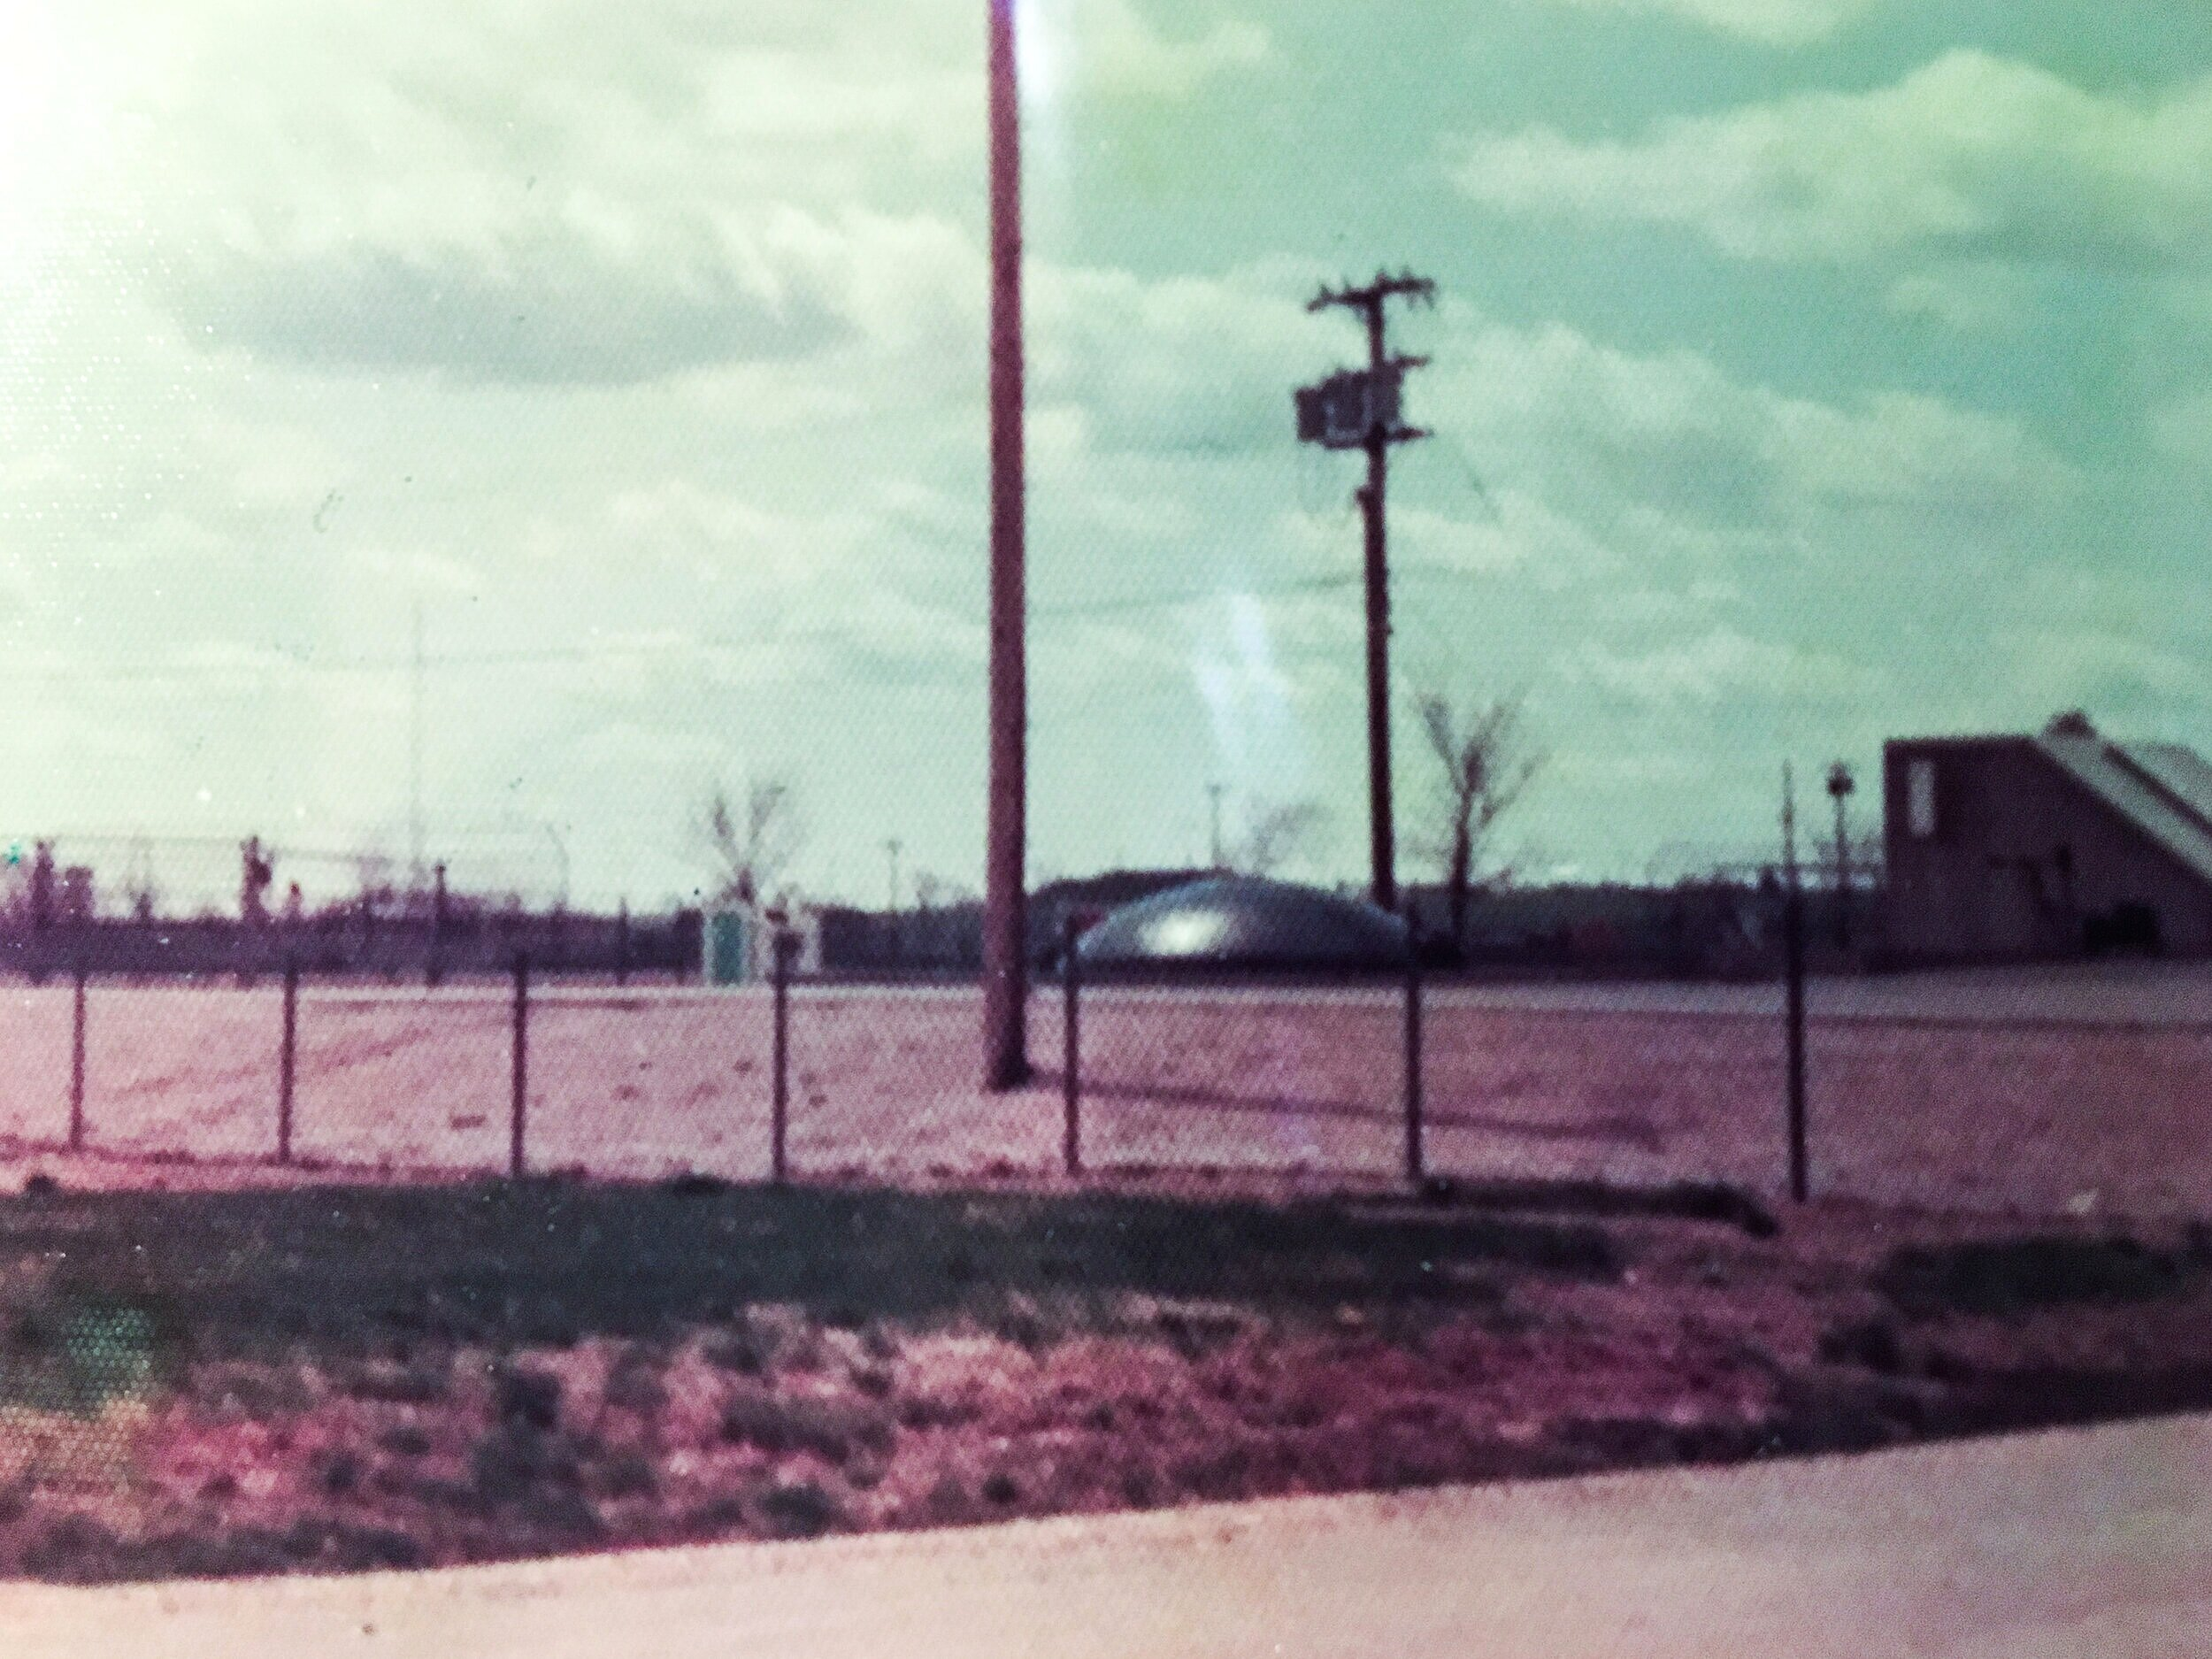 """Polaroid of Kilo-5 missile silo taken a few months after the sighting of the ""black diamond"" 1975"""